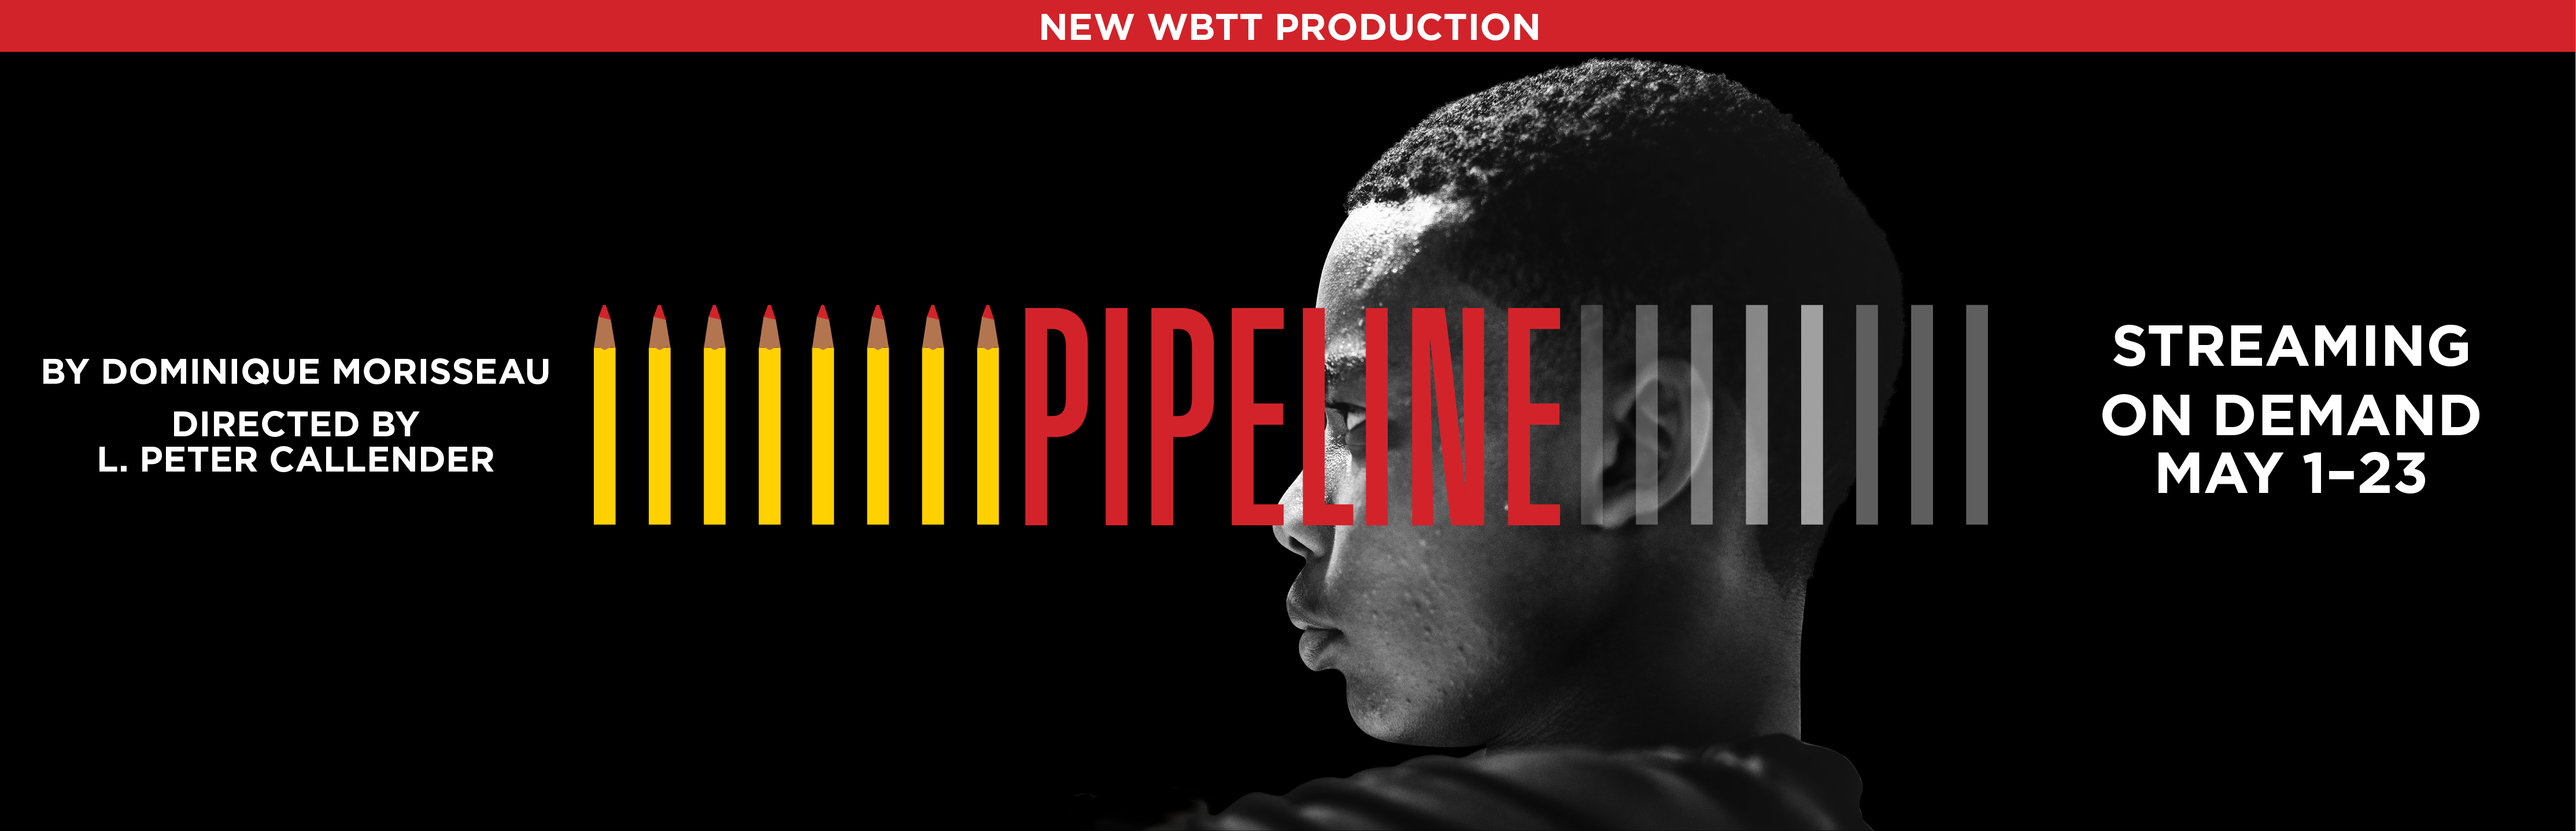 Pipeline: Filmed onstage and Streaming May 1-23